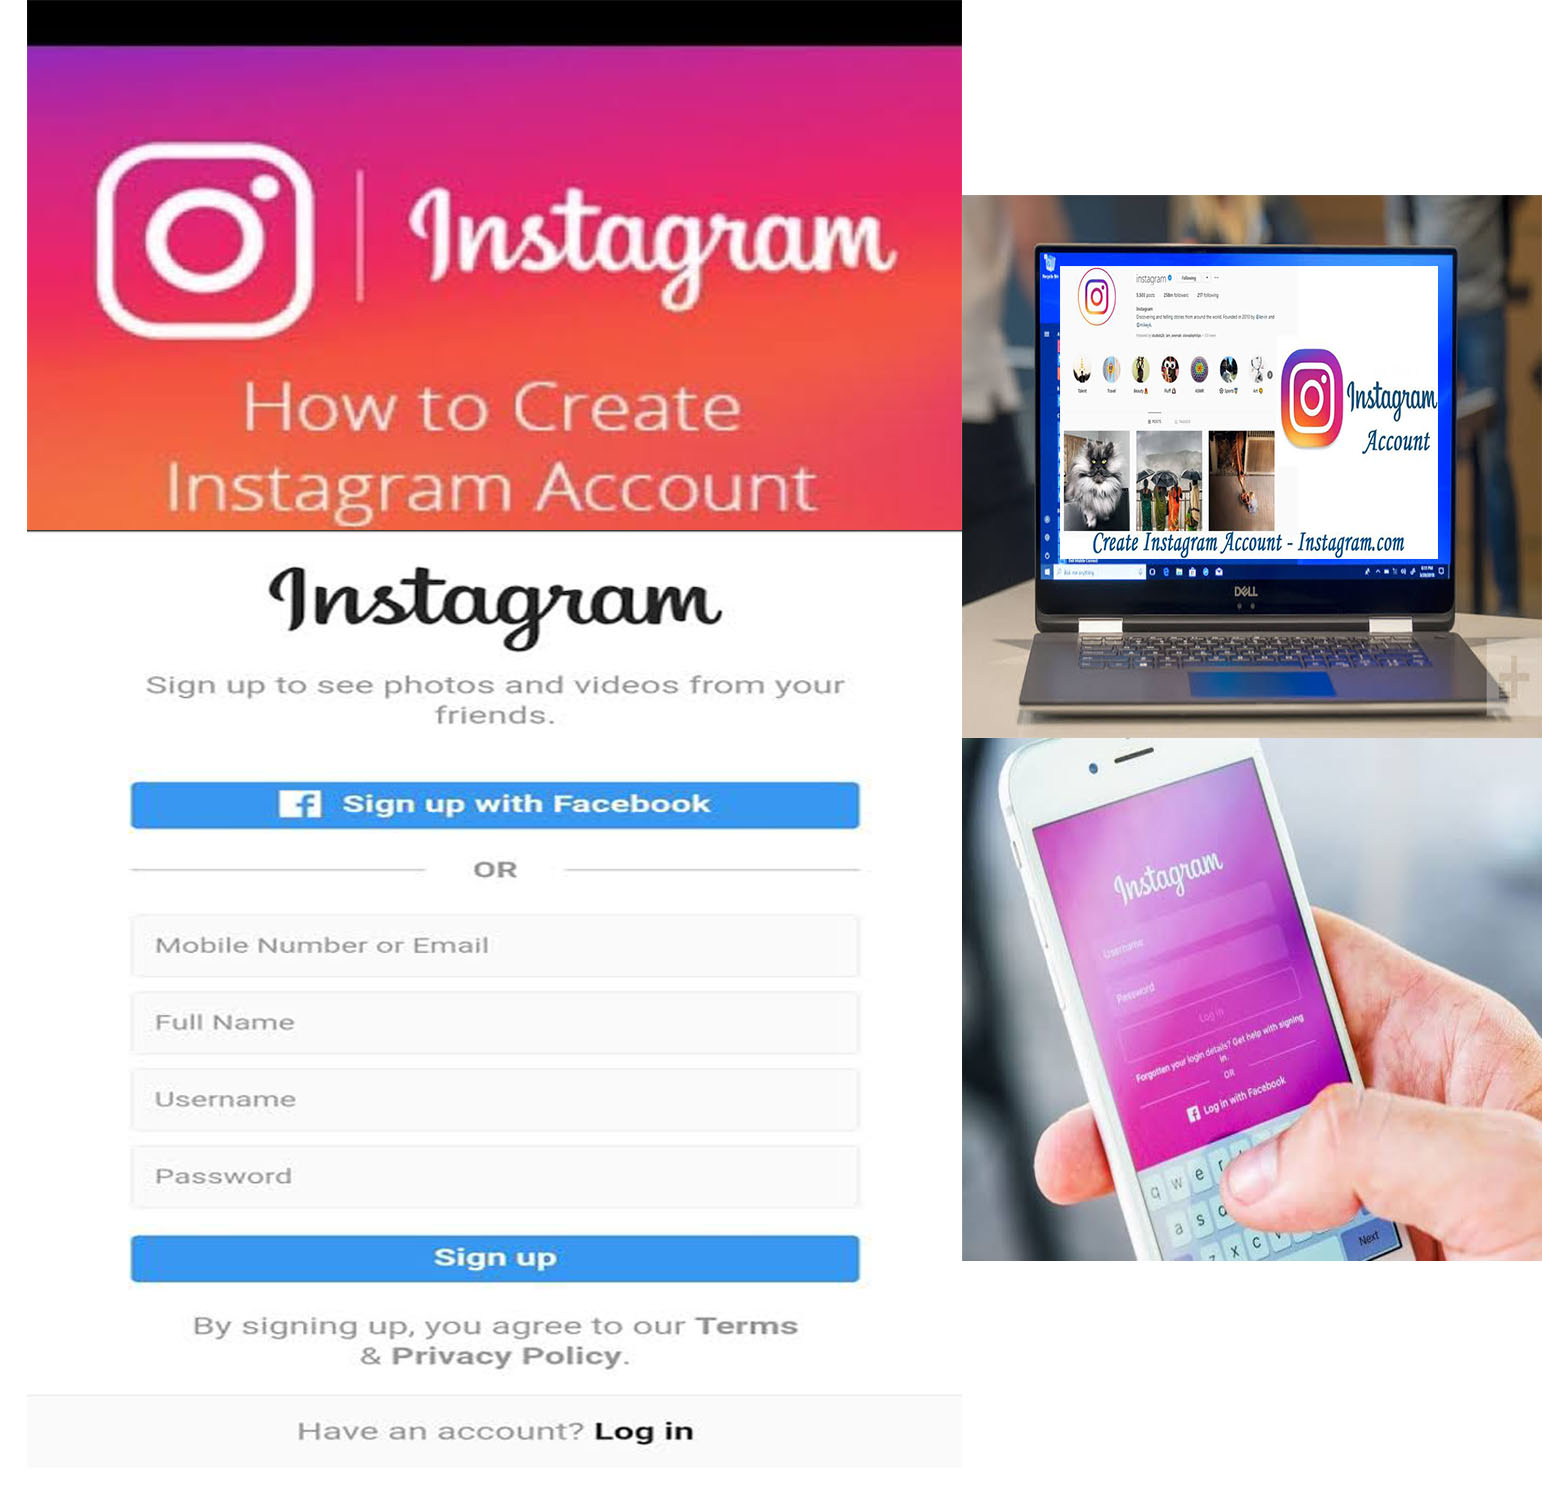 Create Instagram Account How To Create New Instagram Account Instagram With Facebook Tipcrewblog